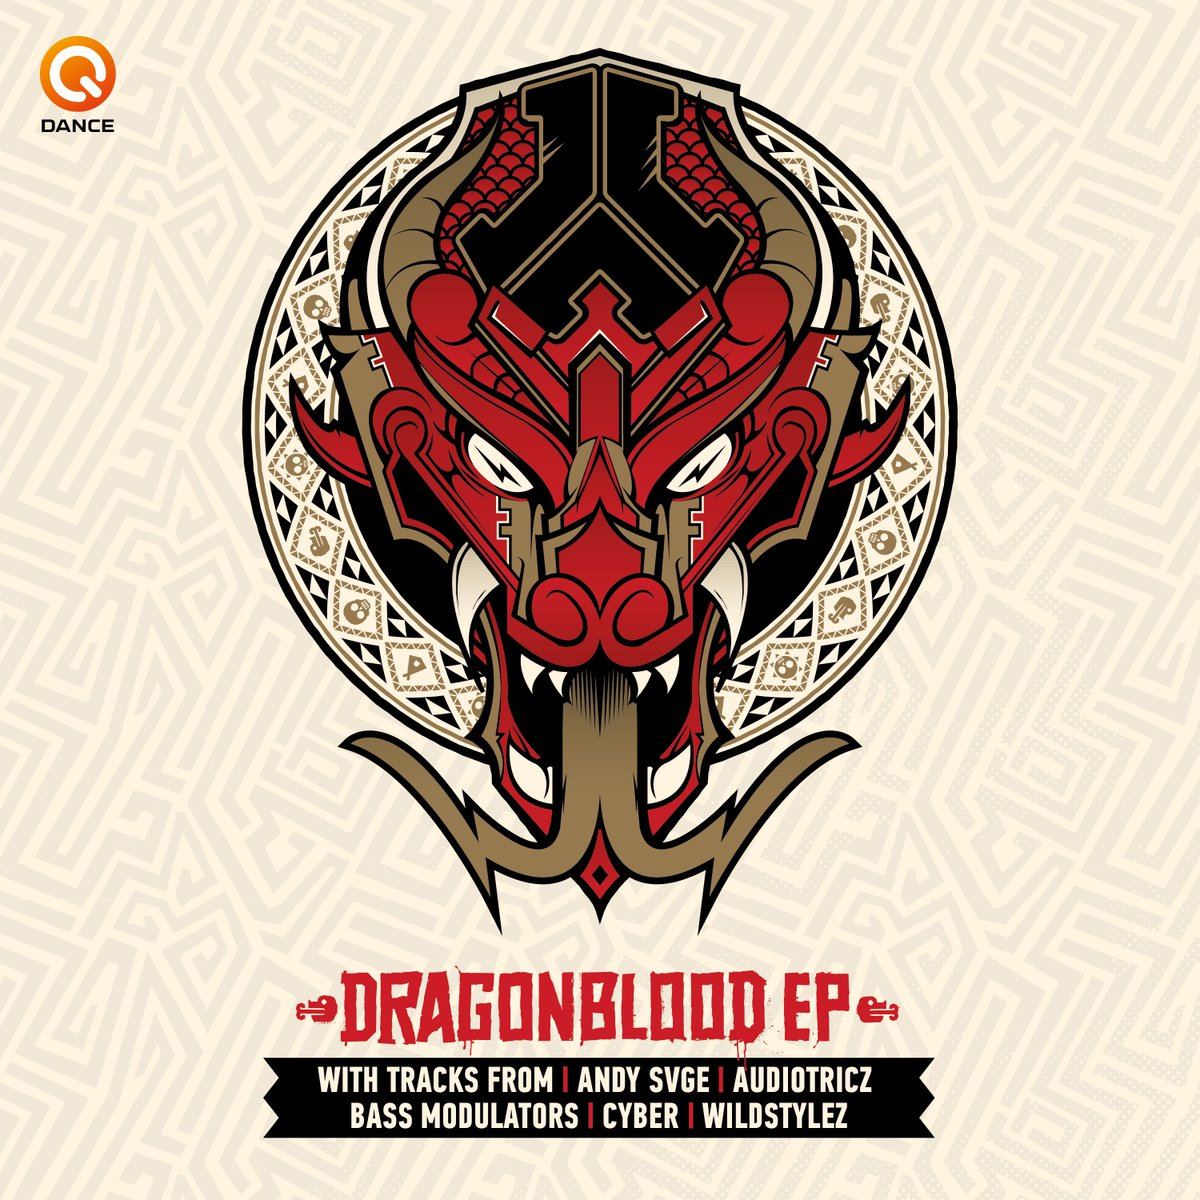 Bass Modulators Bm On Twitter The Defqon1 Dragonblood Ep Is Out